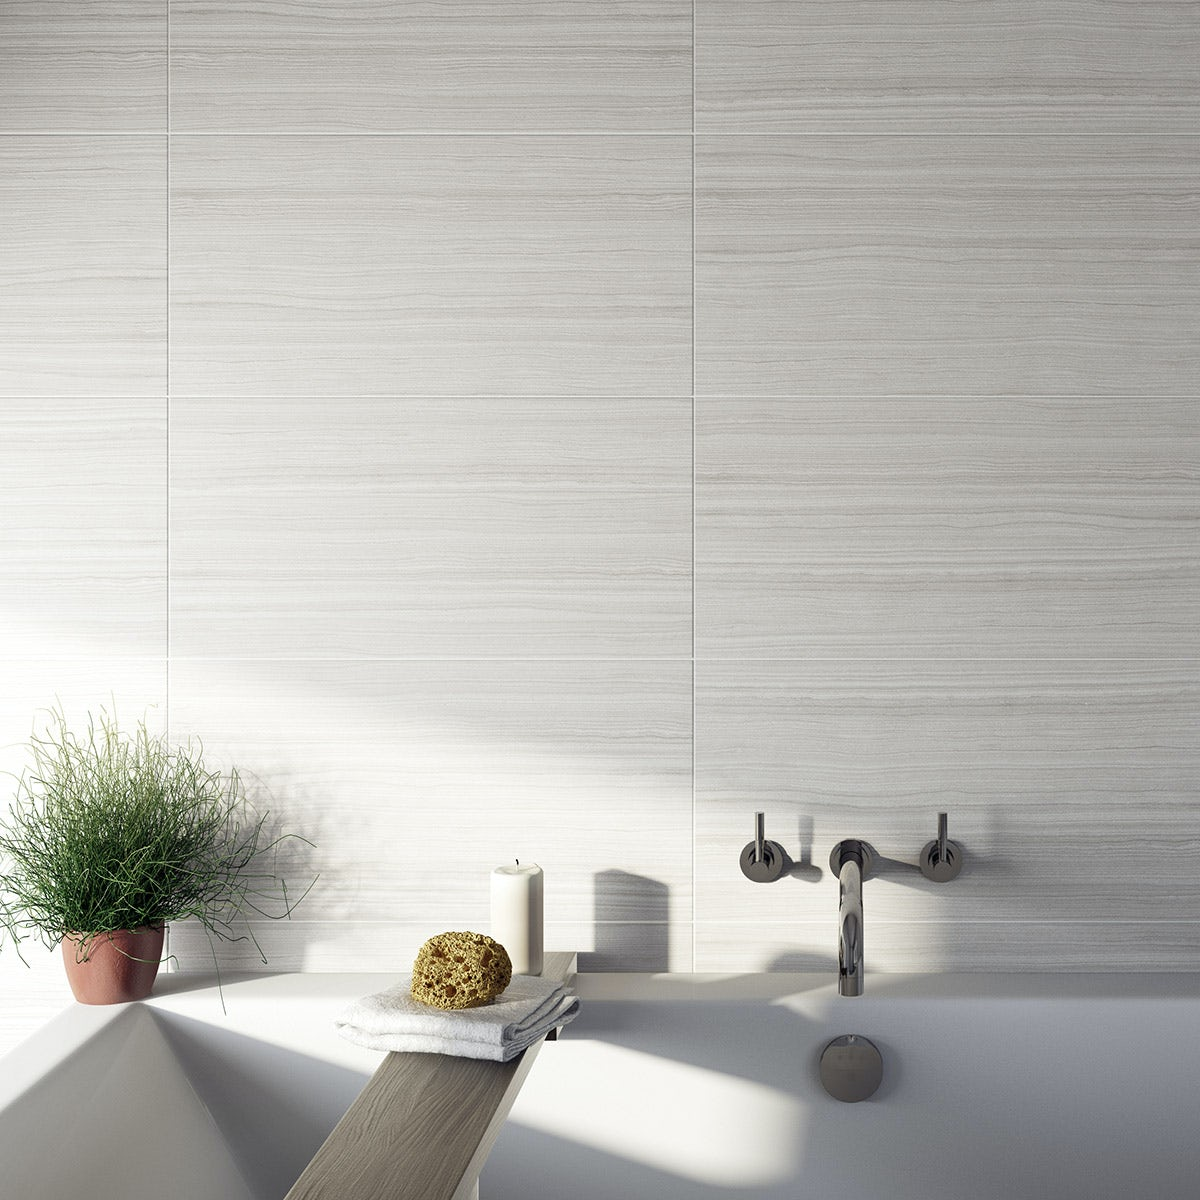 Mirage ceramic tile